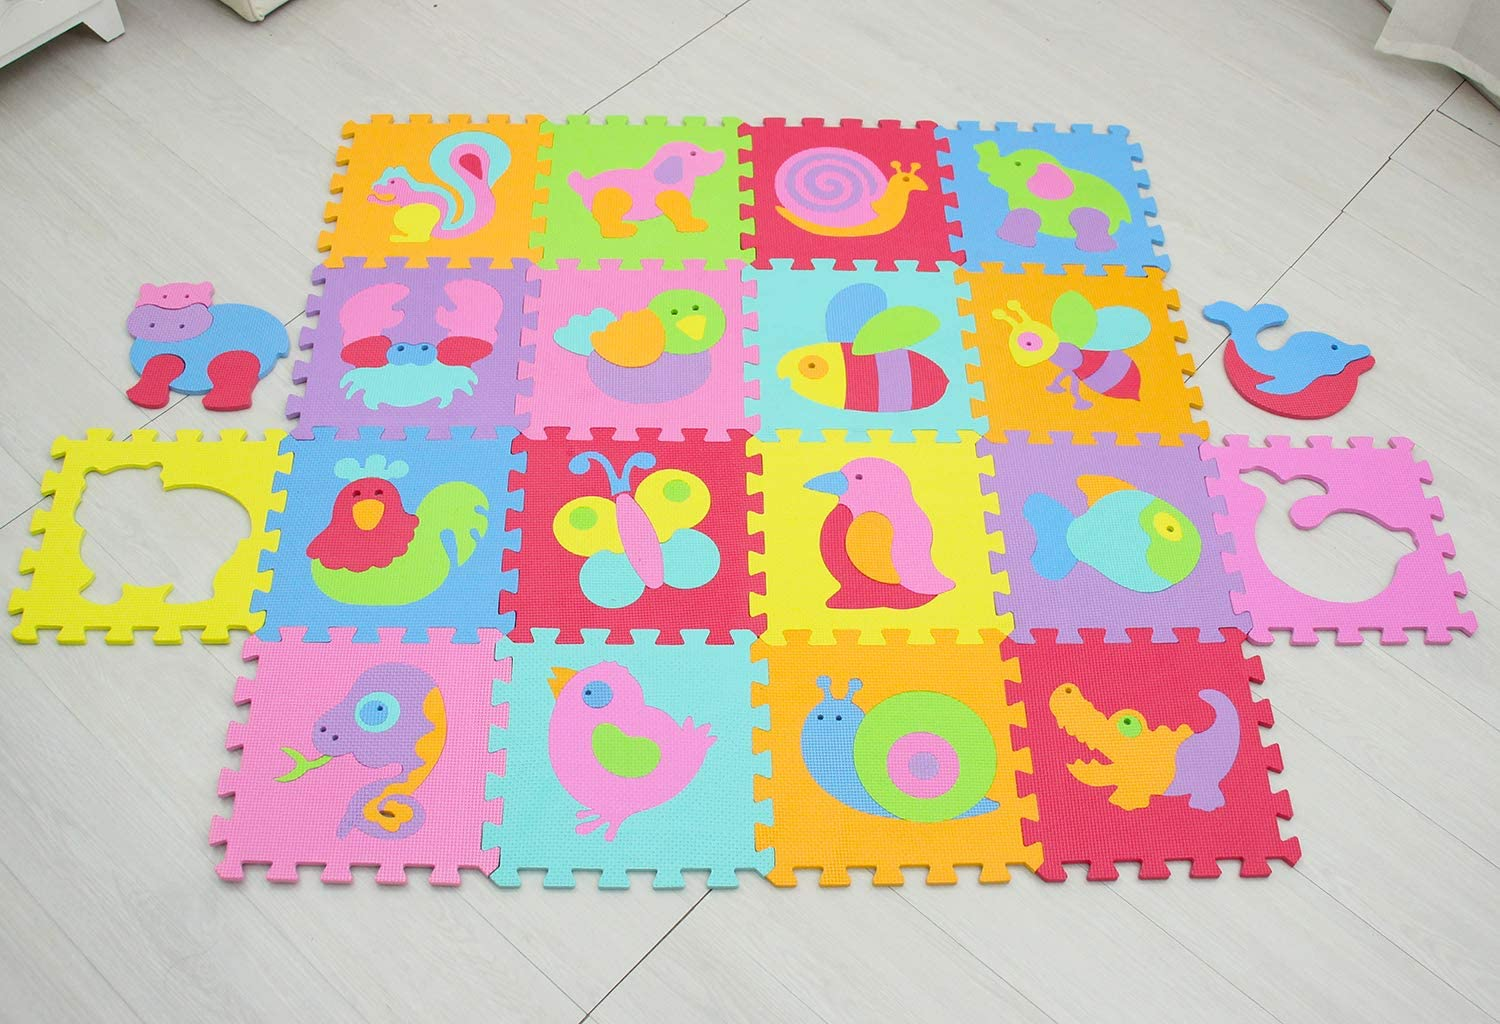 MSHEN Baby Play Mats|Foam Play Mat Tiles|Jigsaw Puzzle Interlocking Floor for Children,Kids and Toddlers|Gym Exercise and Crawling EVA Saft mat 0100143009